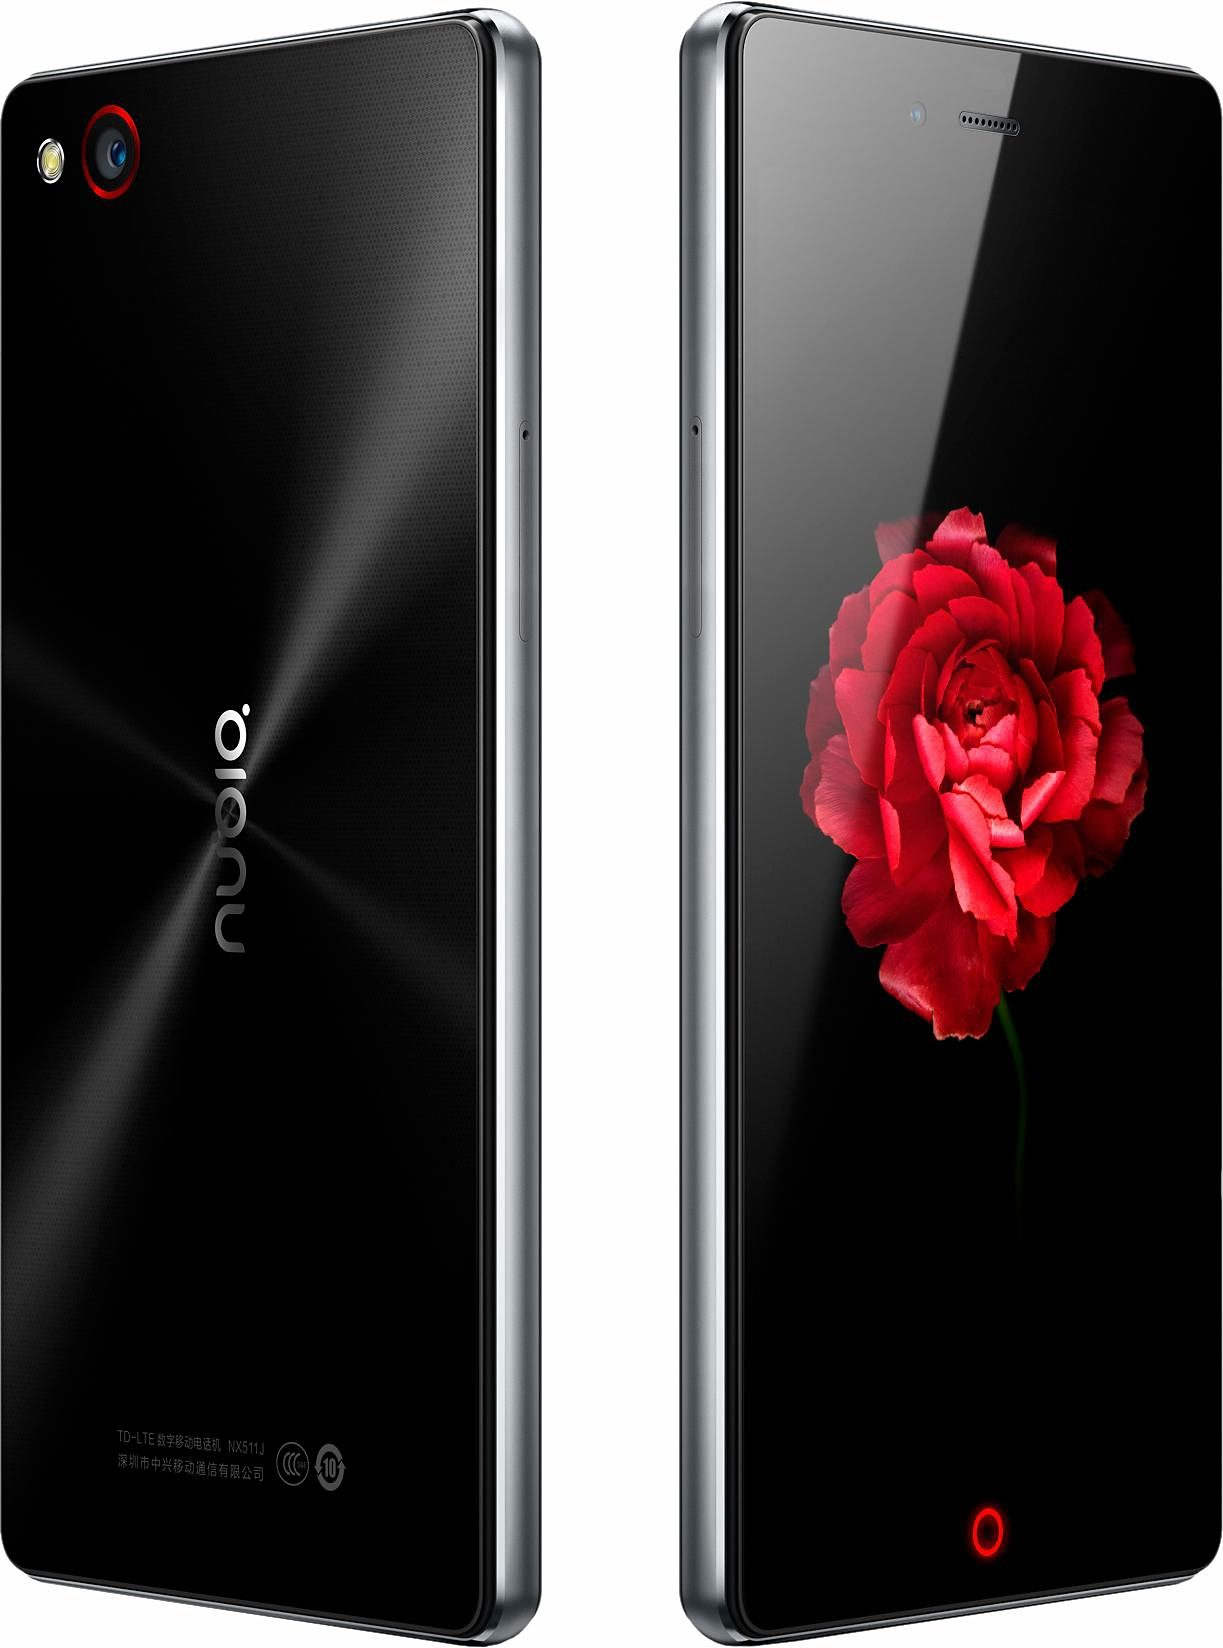 ZTE Nubia Z9 Mini Smartphone, 12,7 cm (5 Zoll) Display, LTE (4G), Android 5.0, 13,0 Megapixel